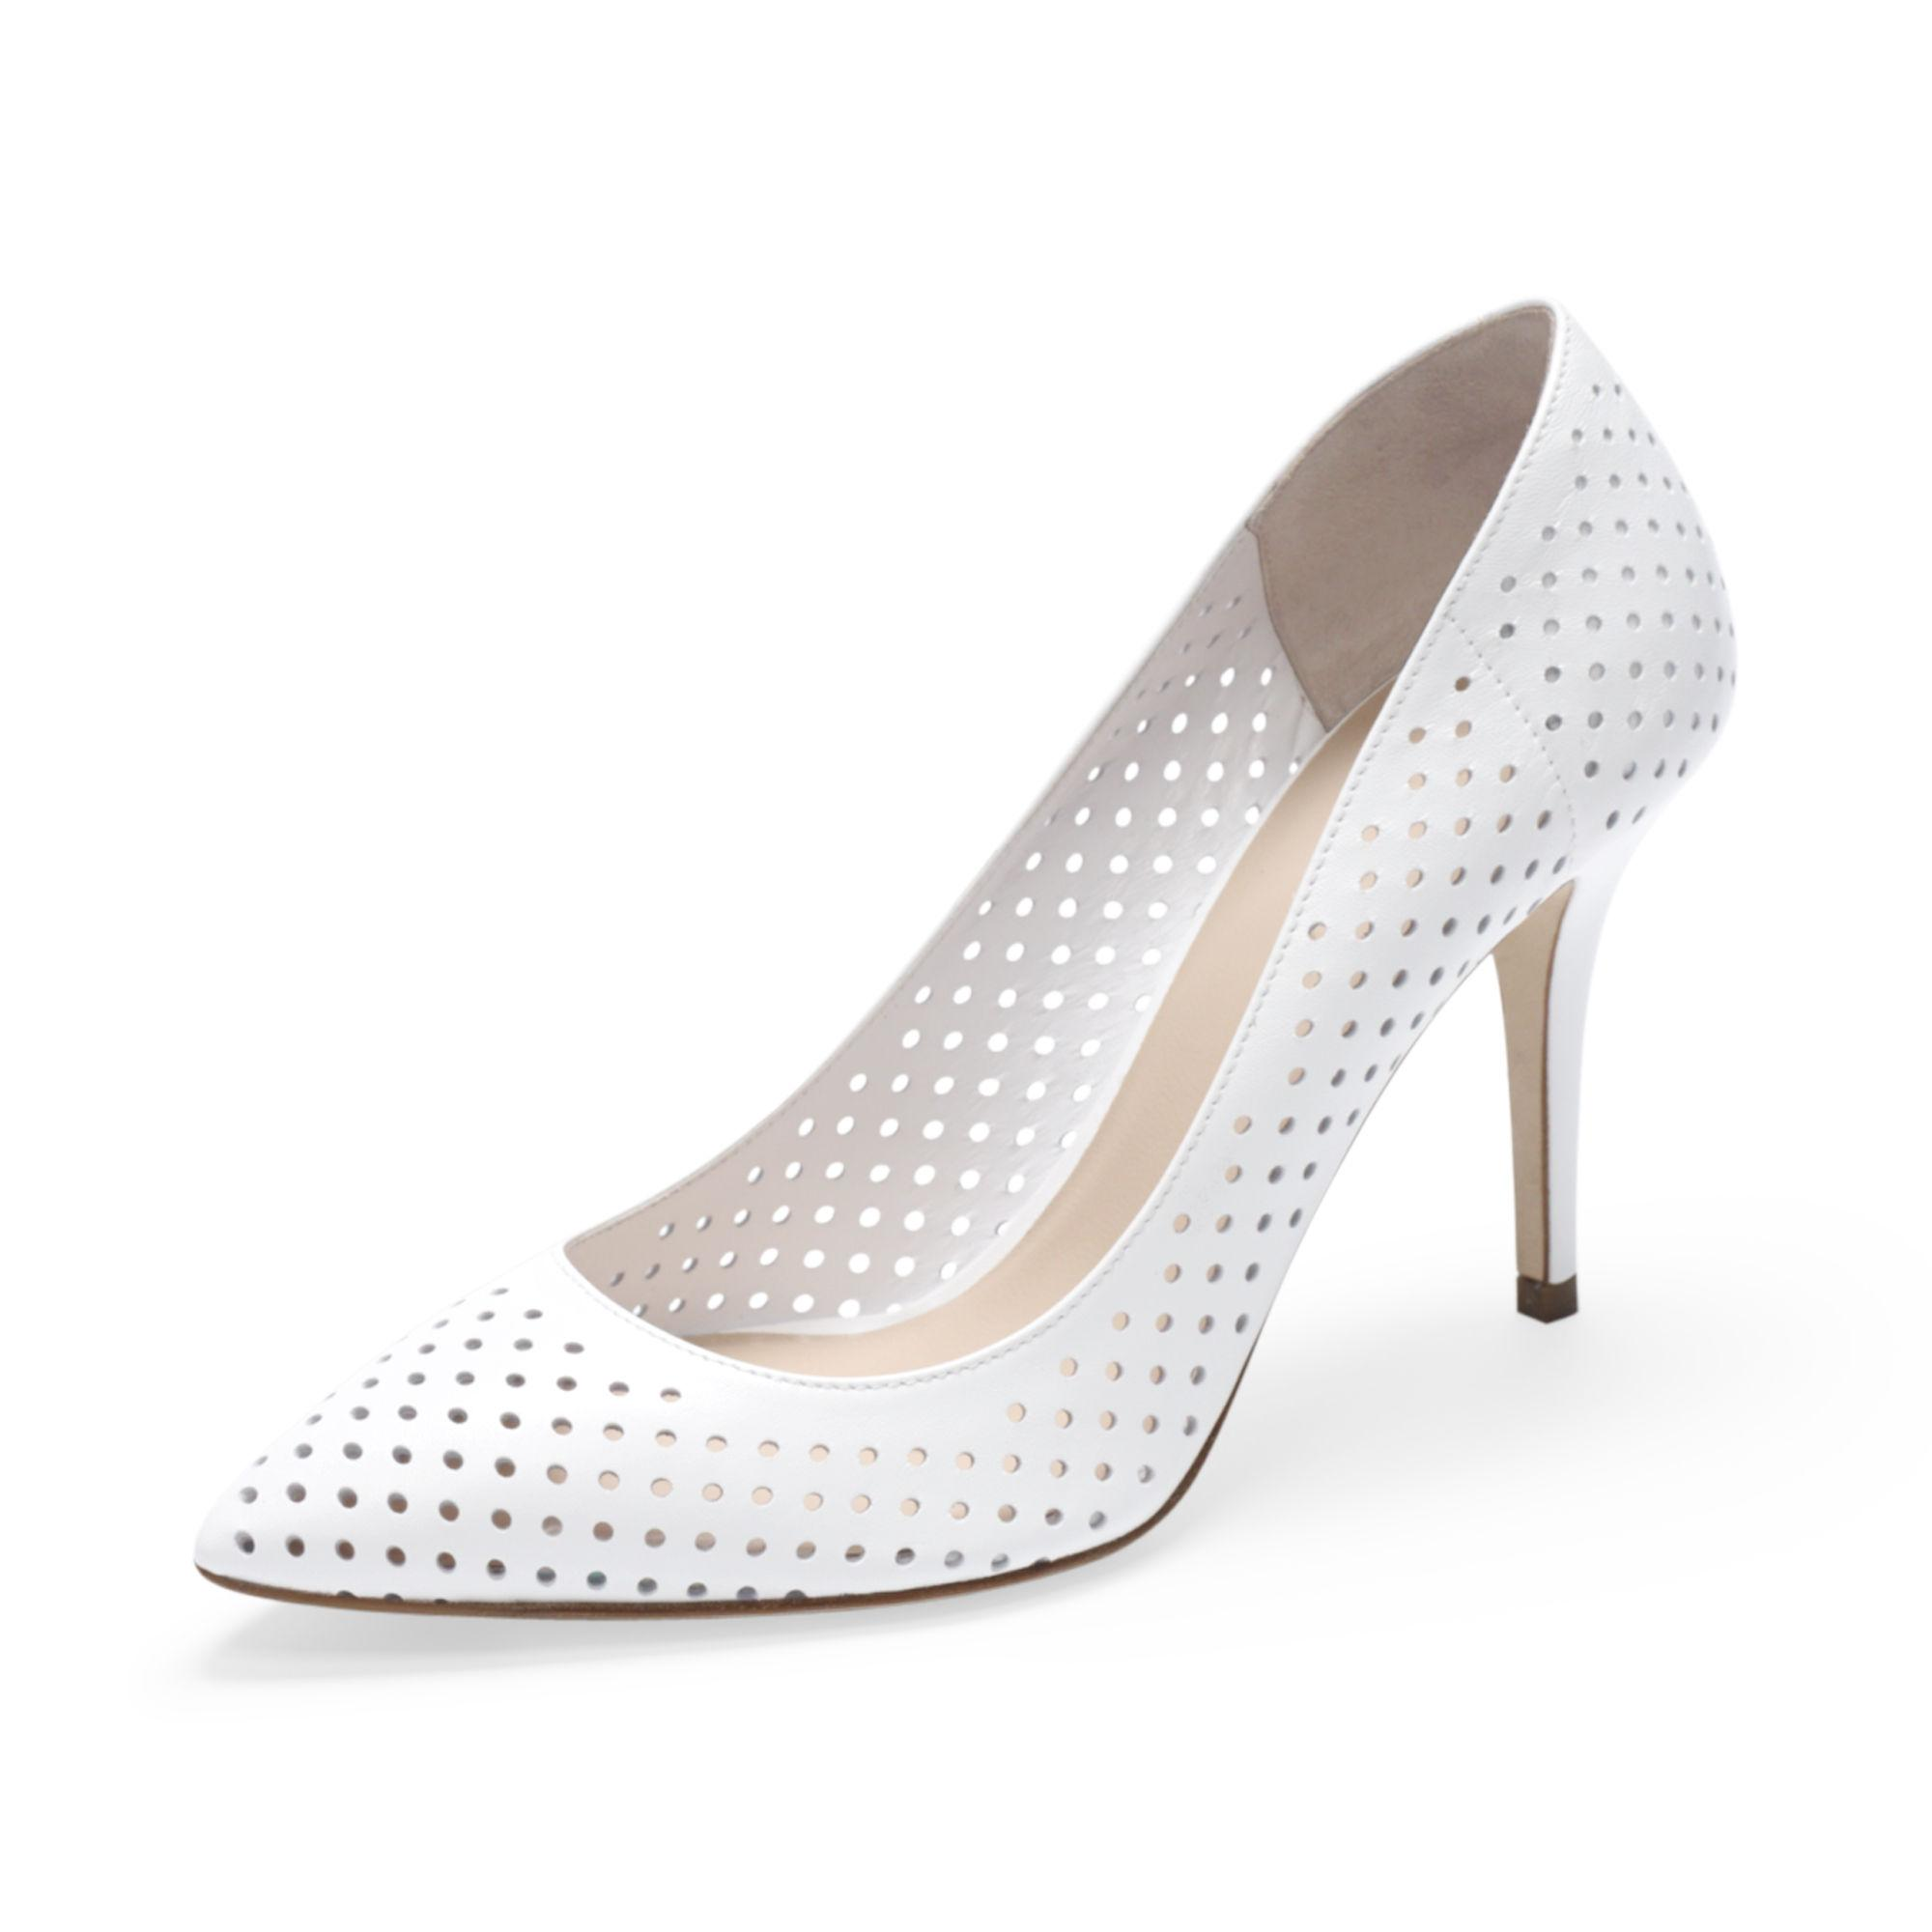 994df2824d0b8e Lyst - Club Monaco April Perforated-Leather Pumps in White